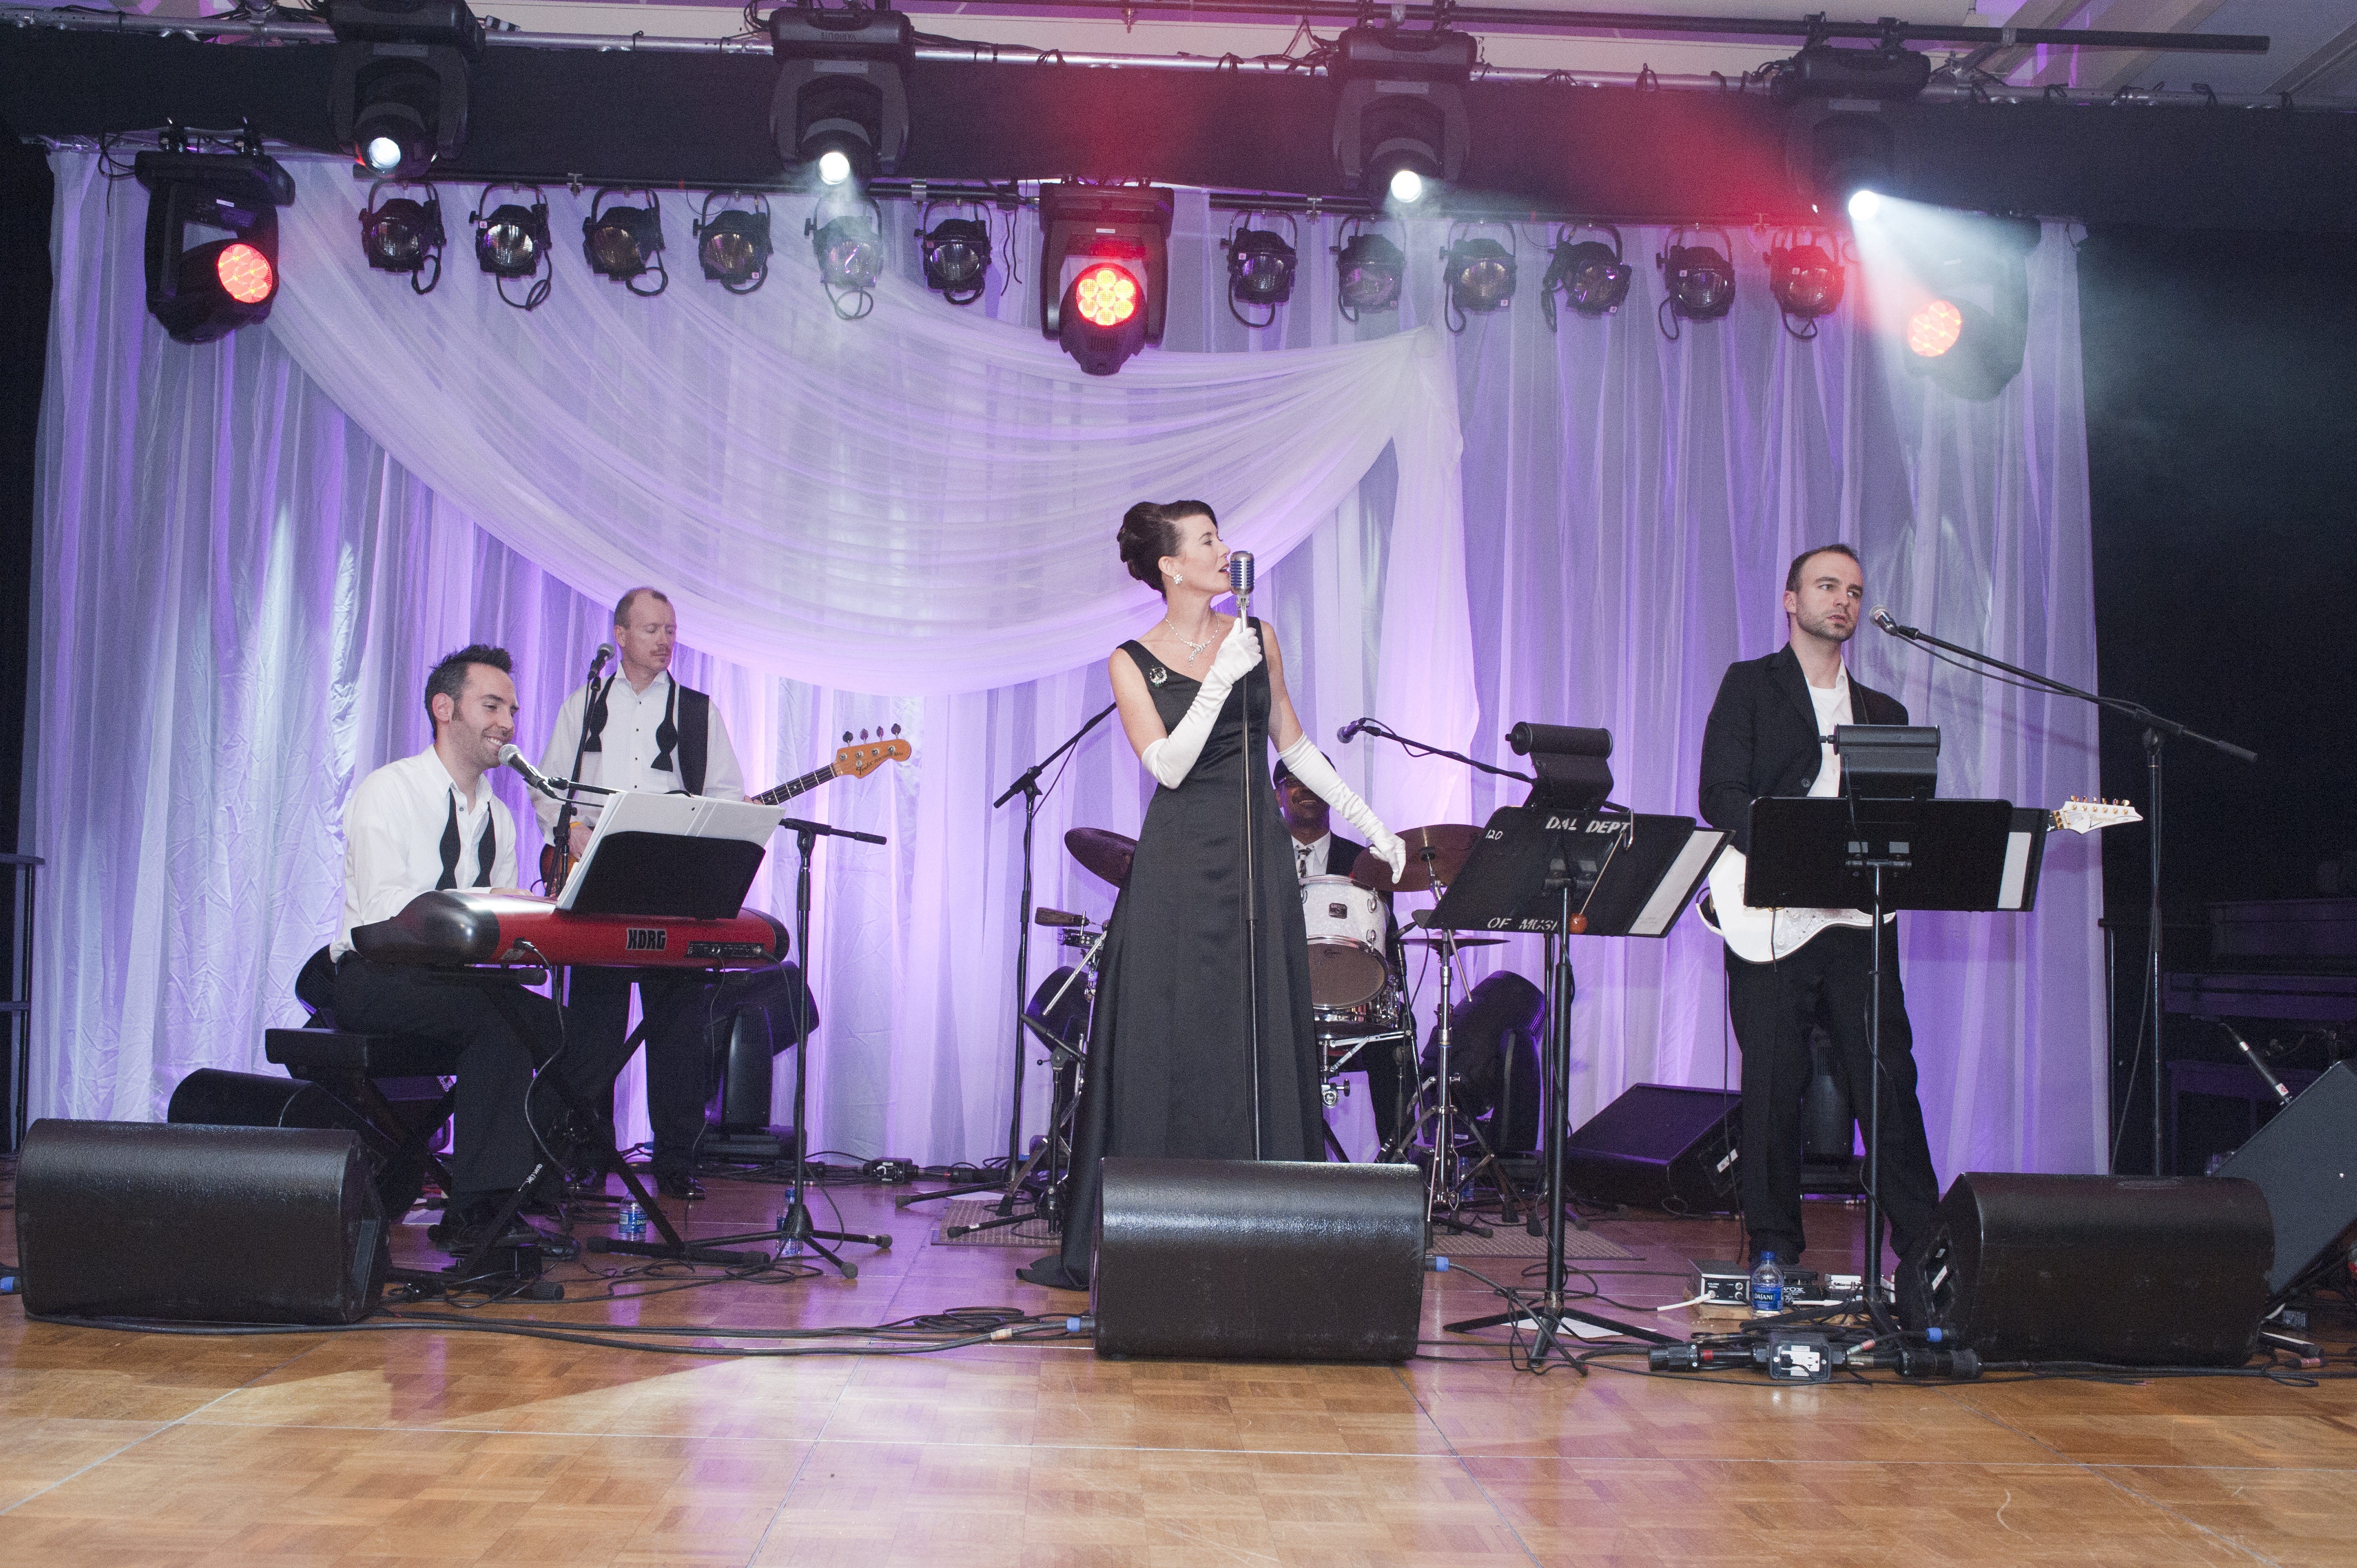 Most are familiar with the tom collins band for their unique jazz lounge arrangements of popular tunes perfect for martini chit chat receptions and dinner